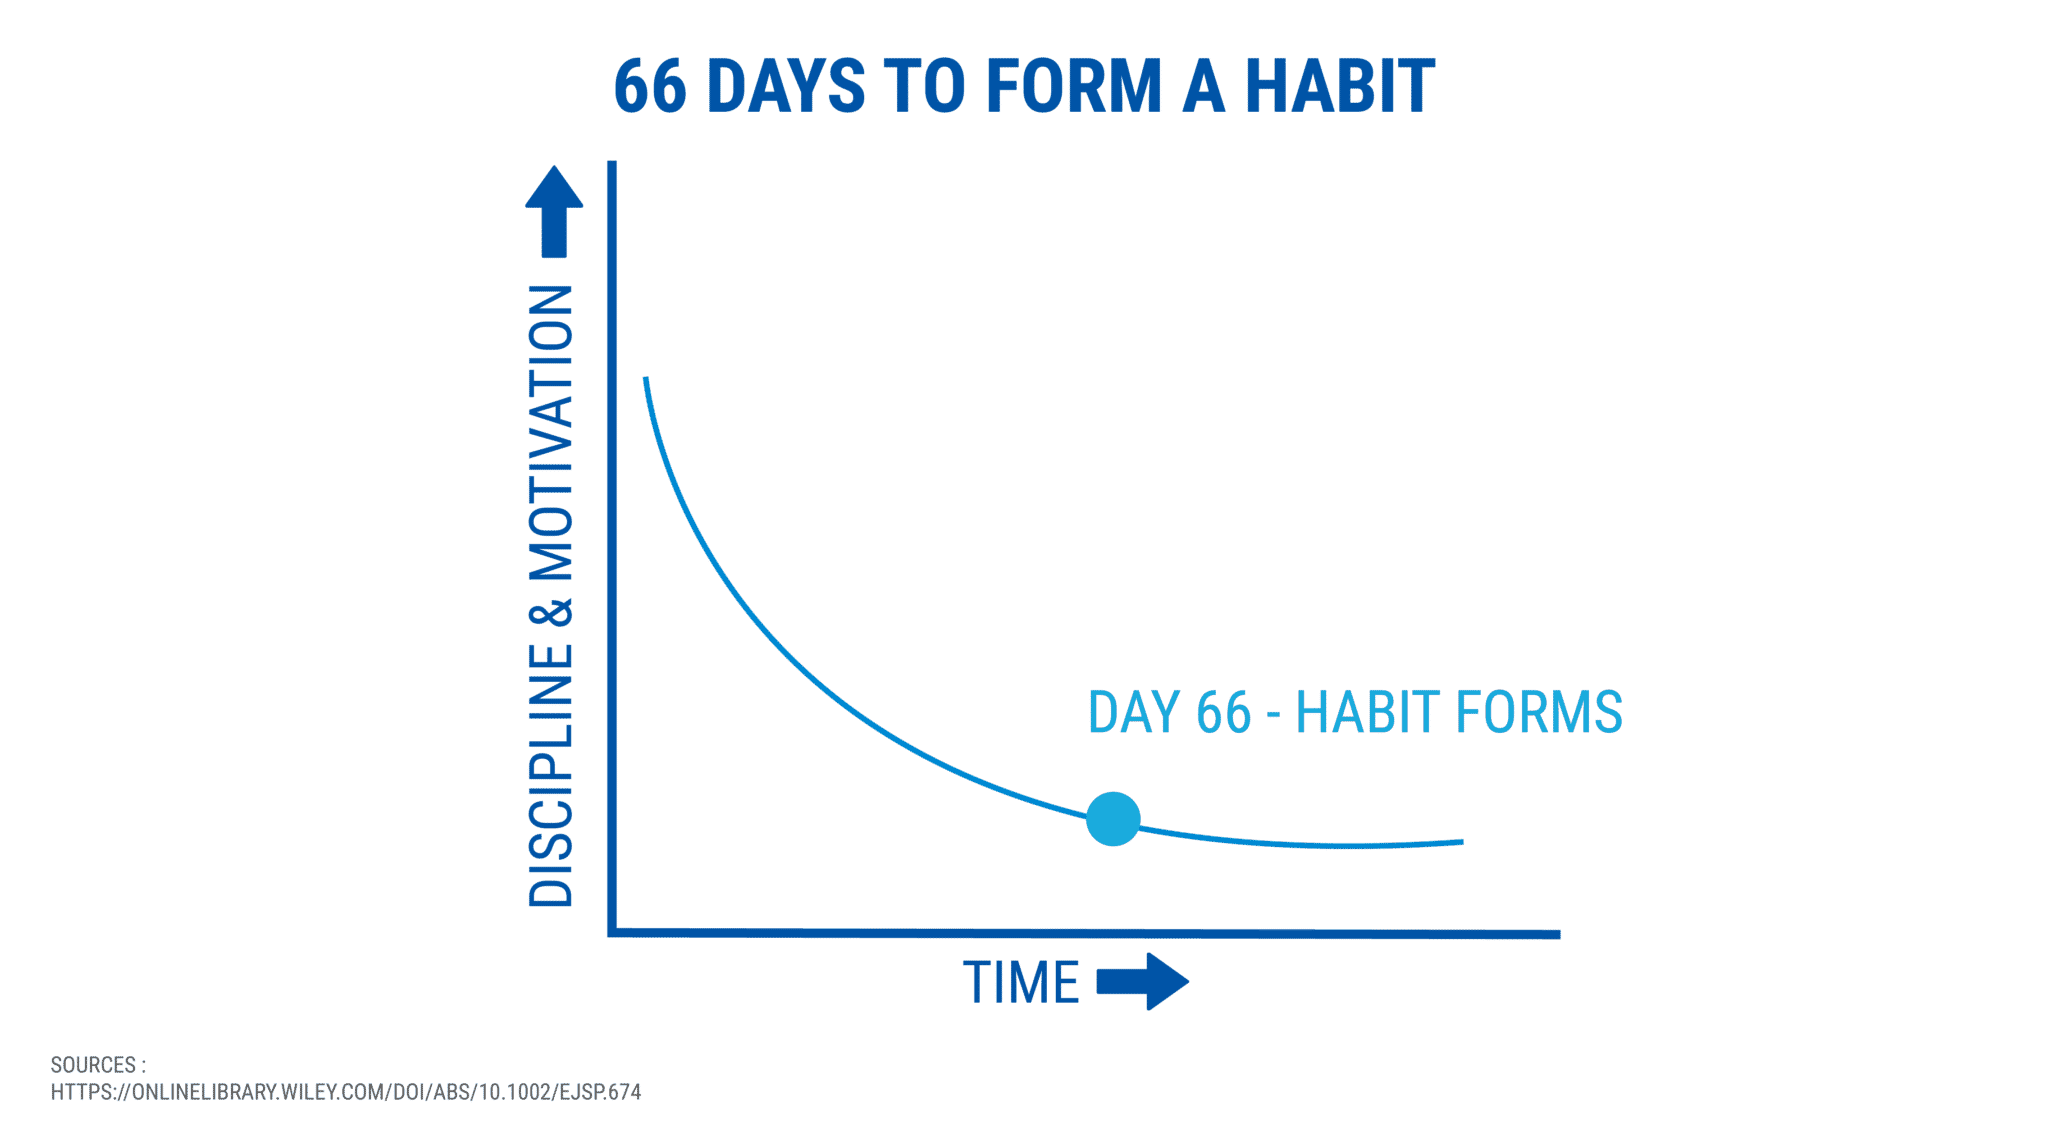 66 days to form a habit - starting a coaching business while working full-time